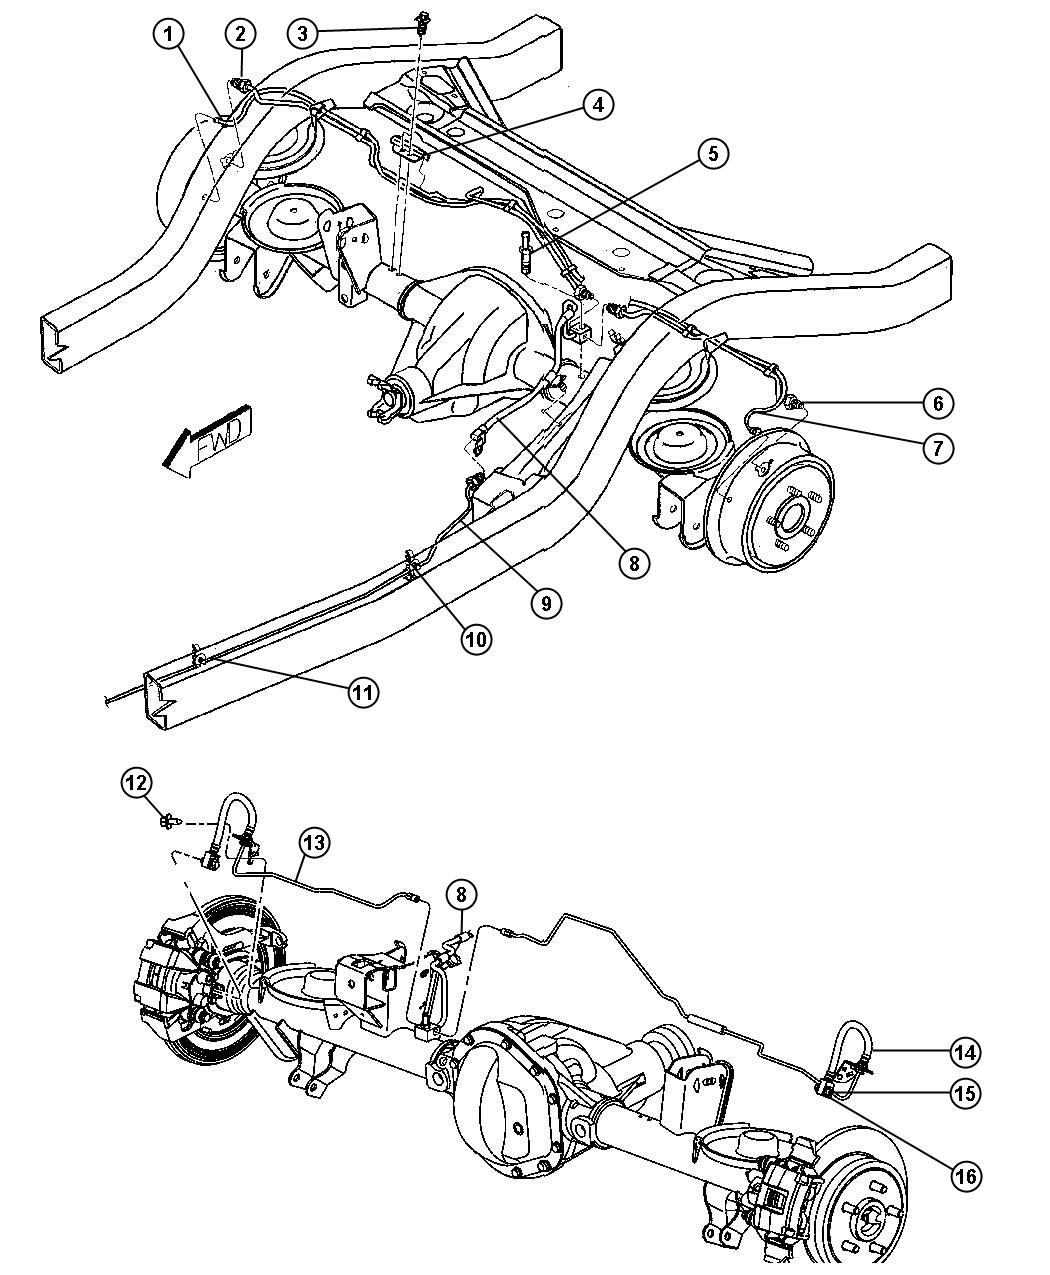 2004 Jeep Wrangler X Brake Lines and Hoses,Rear,LHD With ABS.